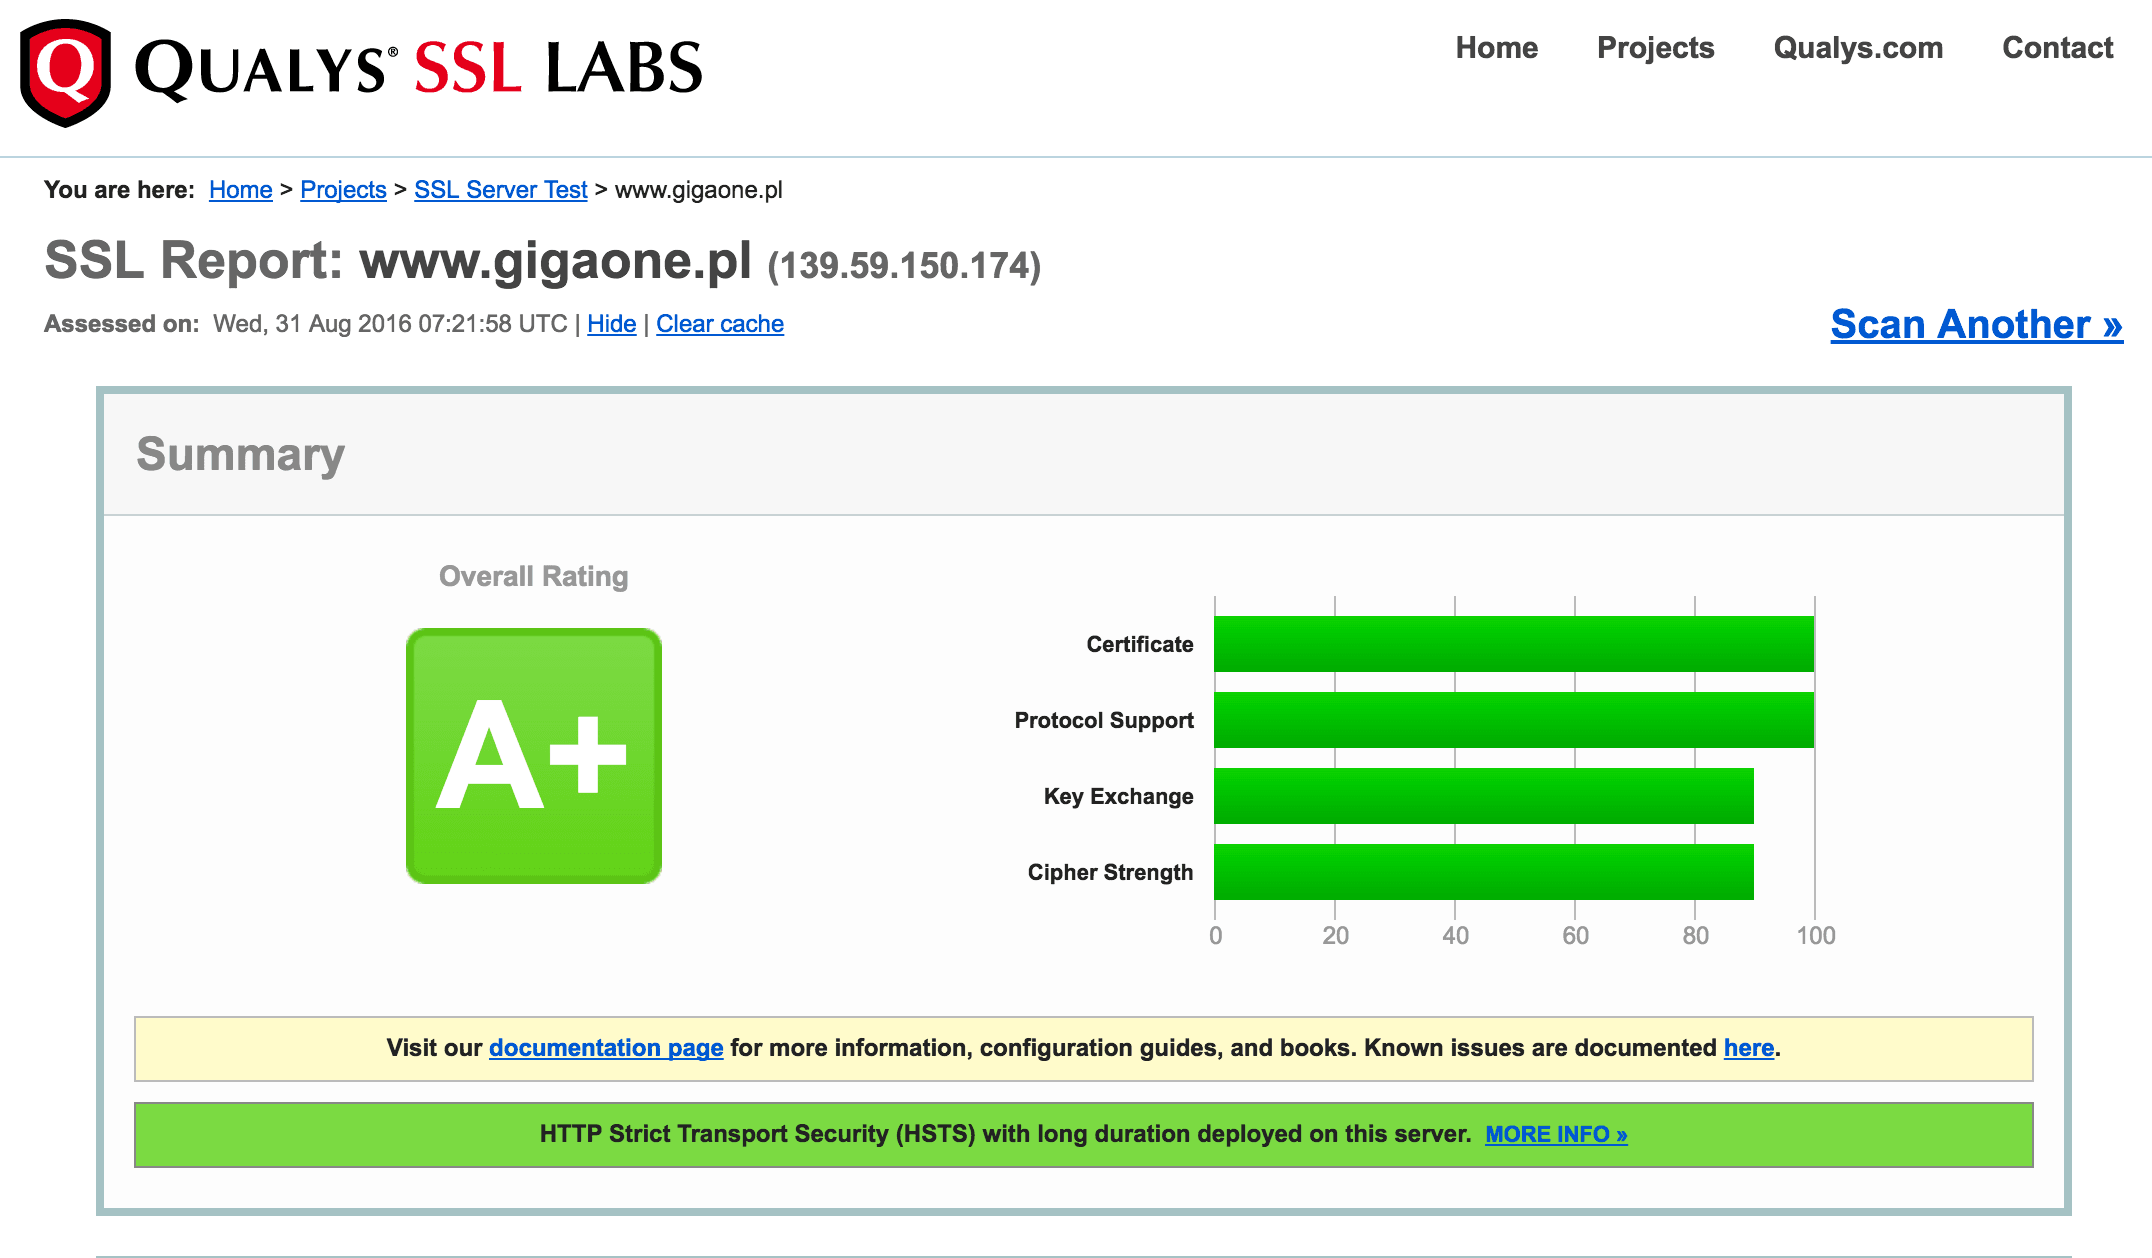 Qualys SSLLabs